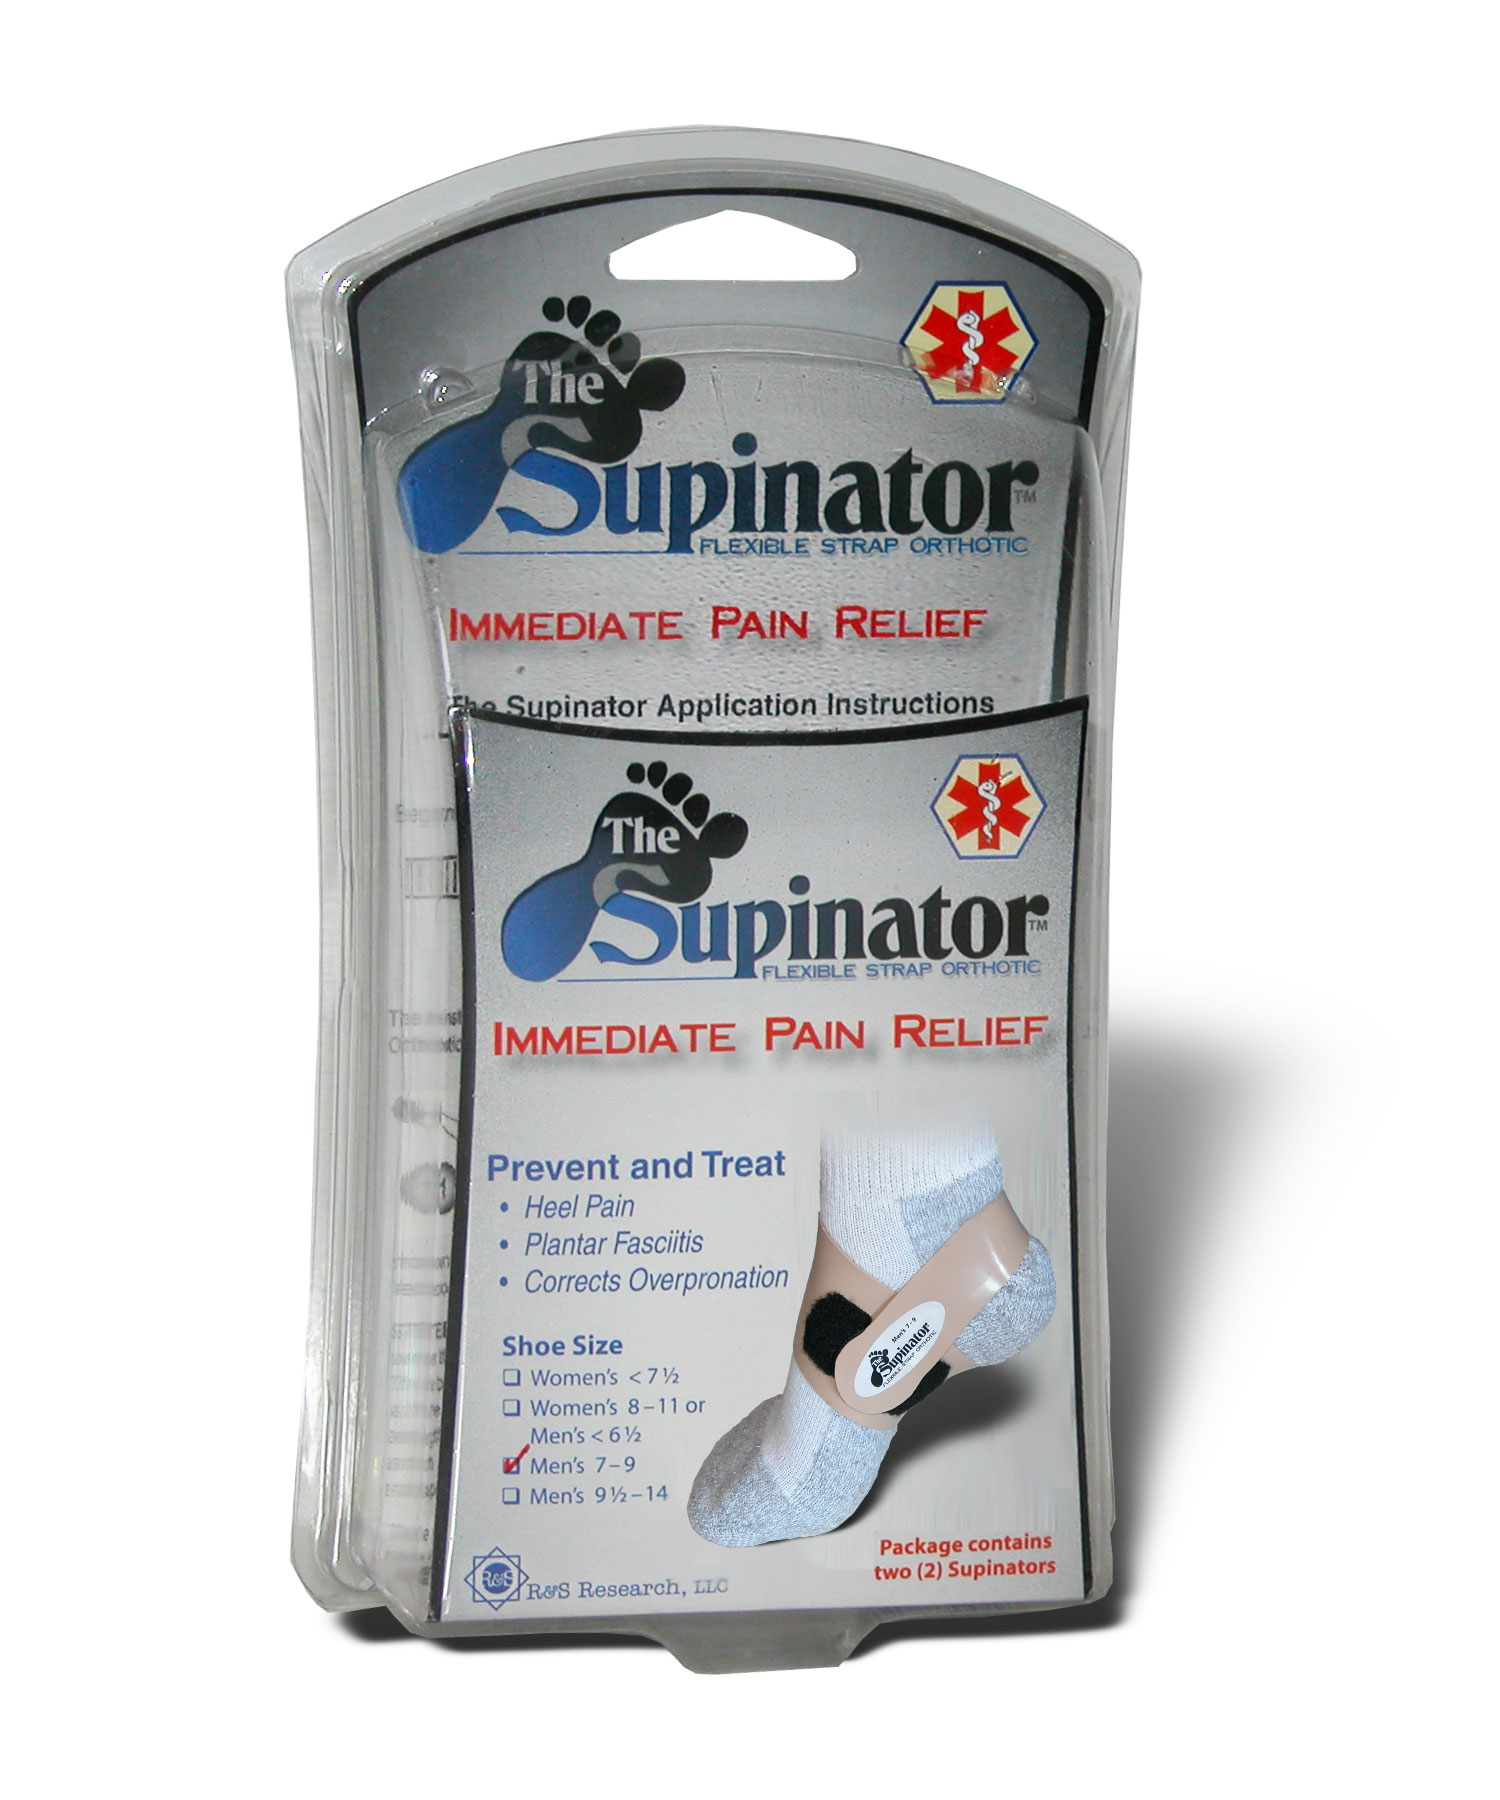 Supinator-Clamshell-Packaging